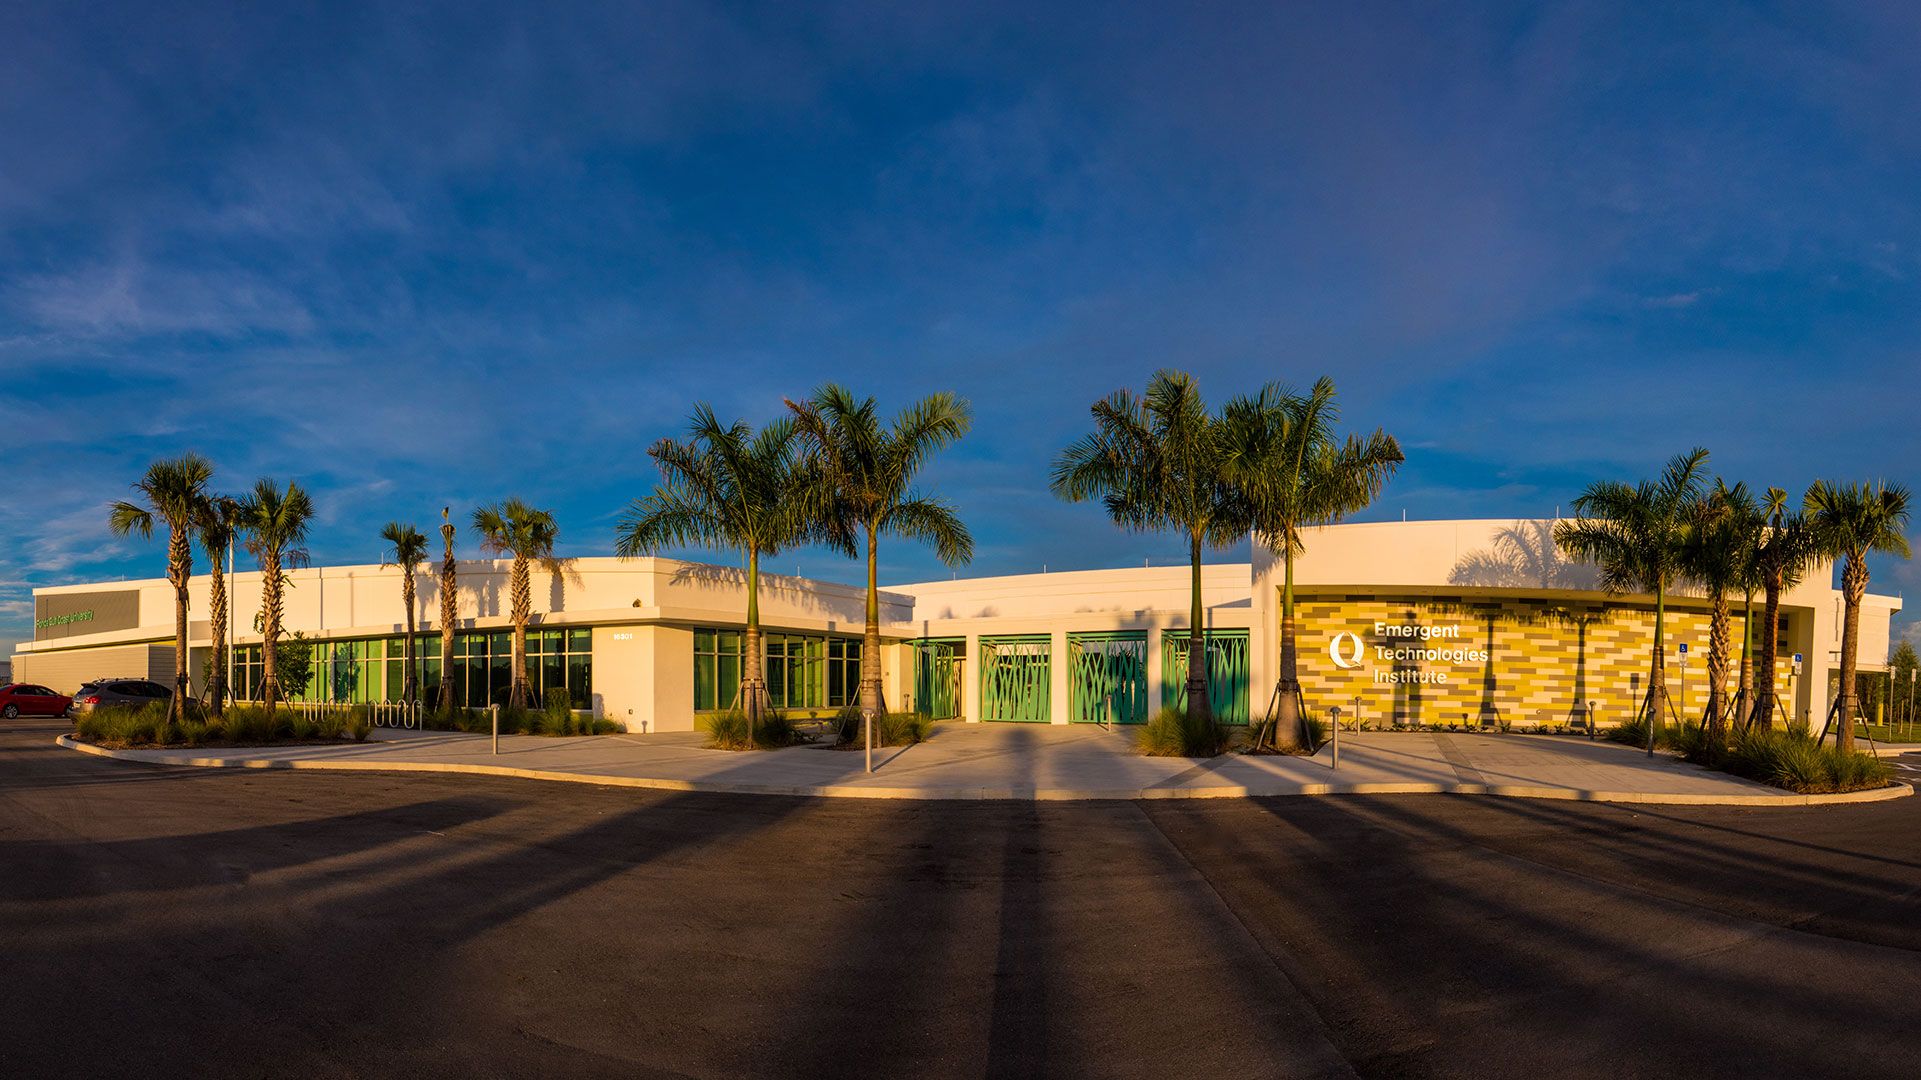 The Emergent Technologies Institute is off Alico Road north of the FGCU campus.